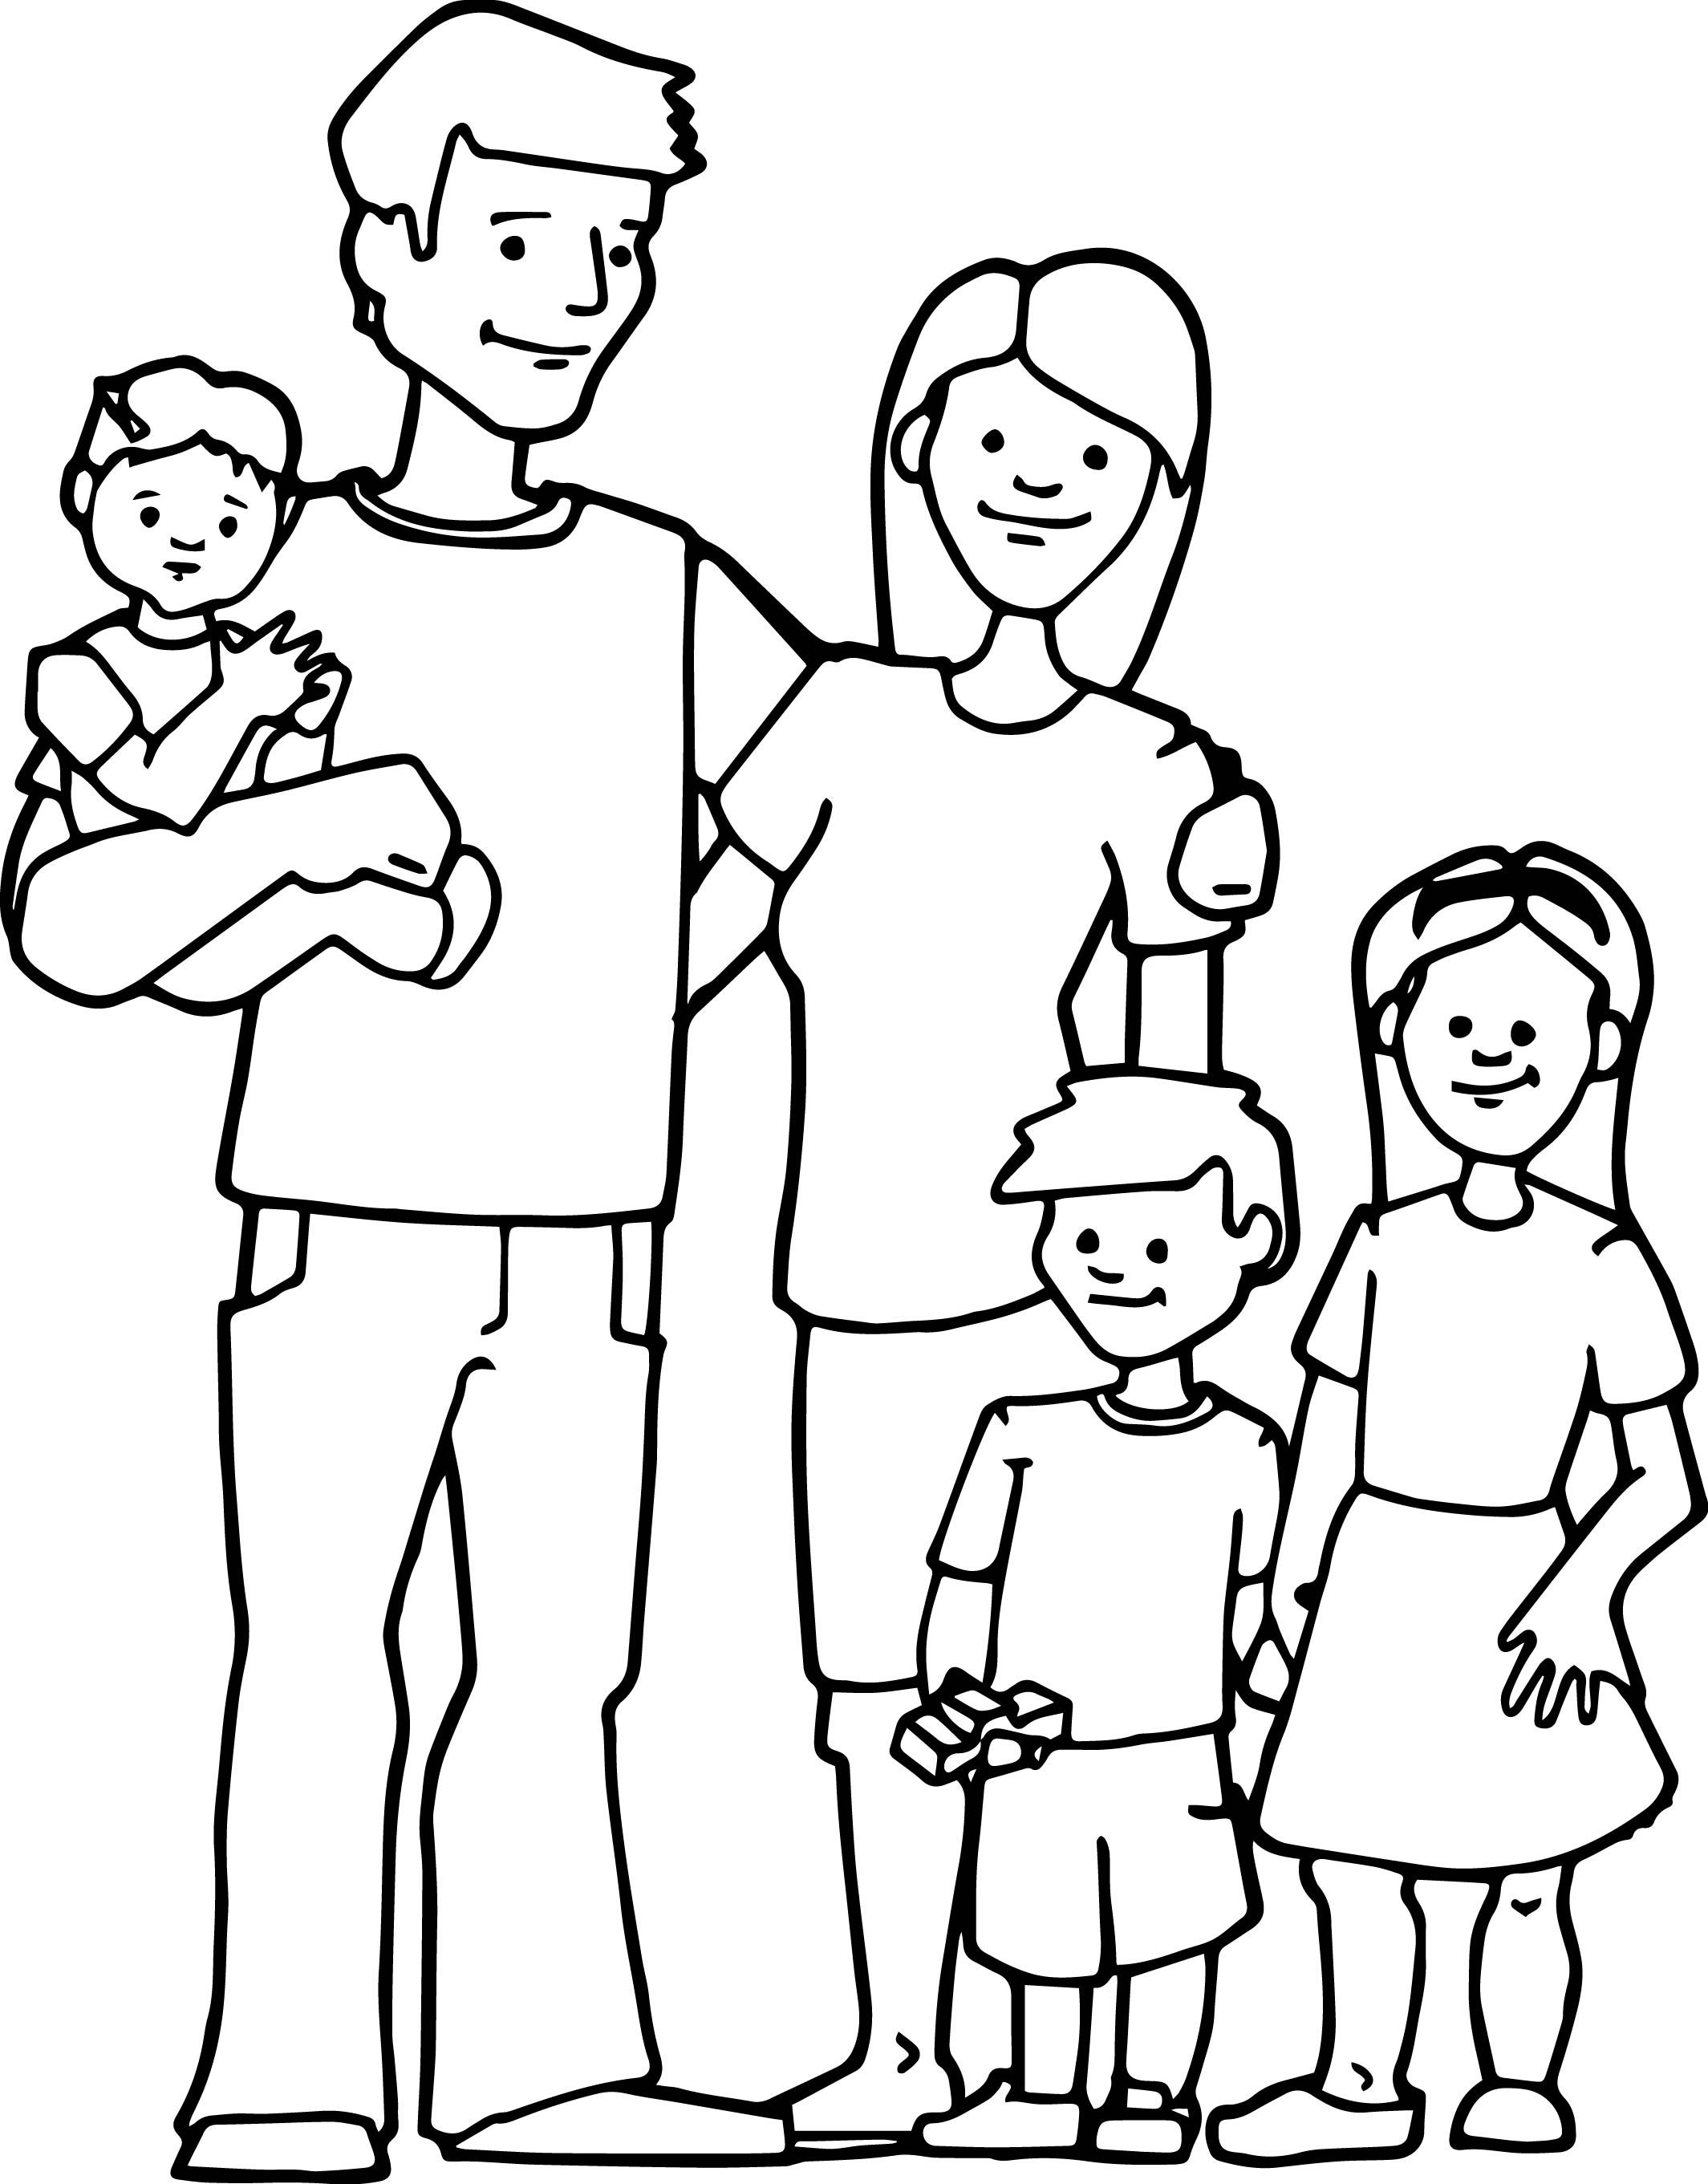 Preschool coloring pages family murderthestout for Coloring page for preschool